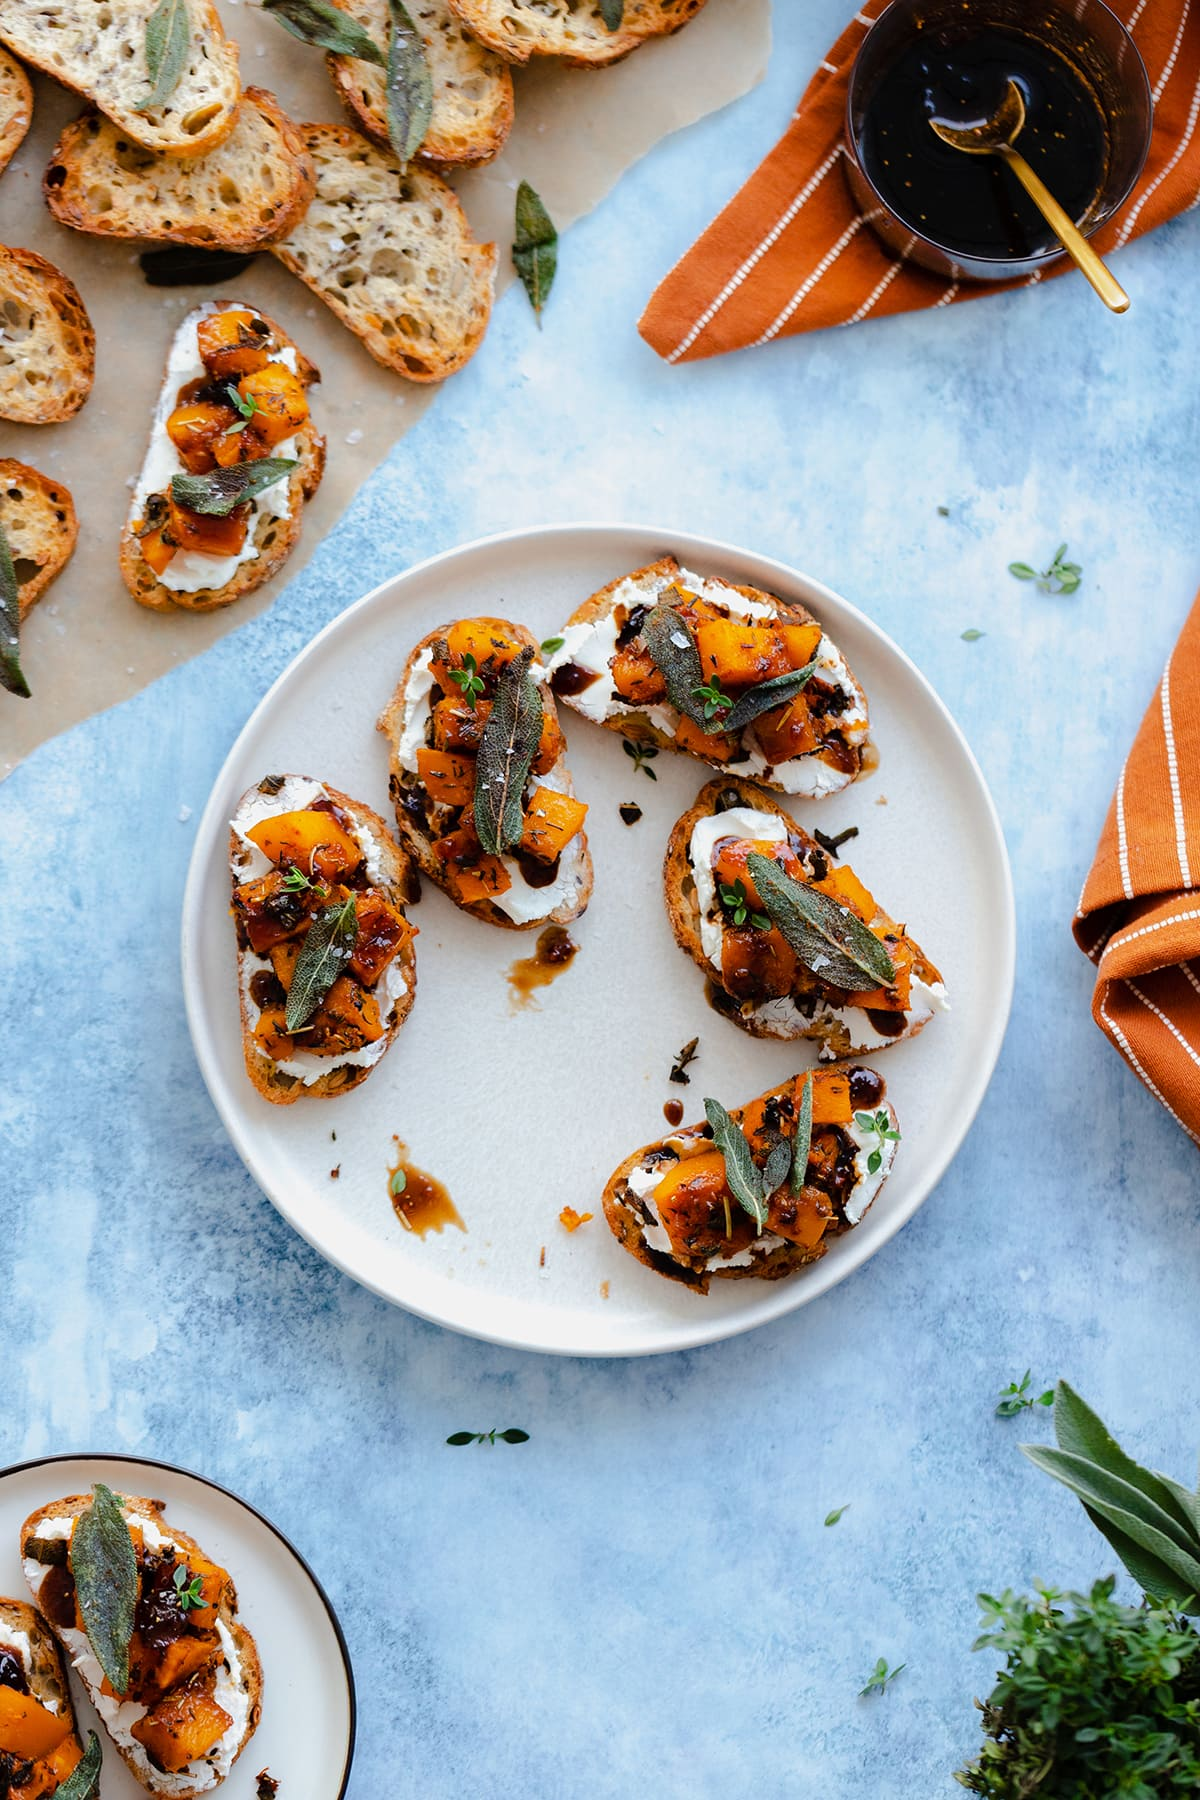 An overheat shot of Butternut Squash Crostini with Goat Cheese and Fig Balsamic Glaze